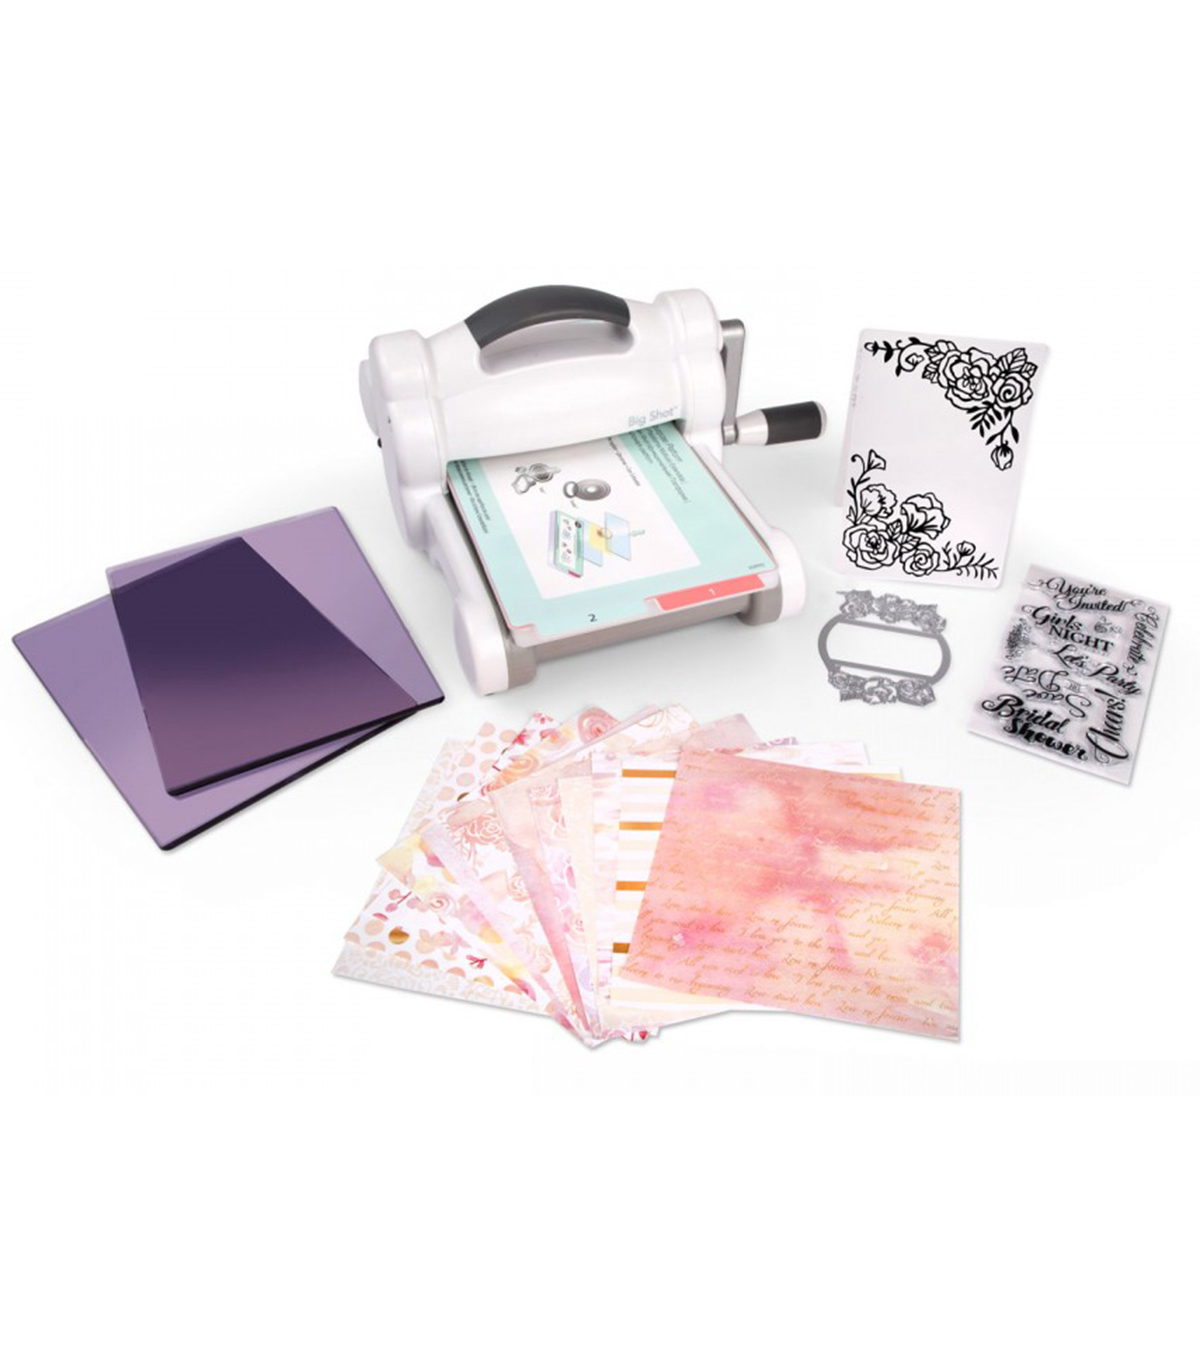 Sizzix David Tutera Big Shot Starter Kit-White & Gray